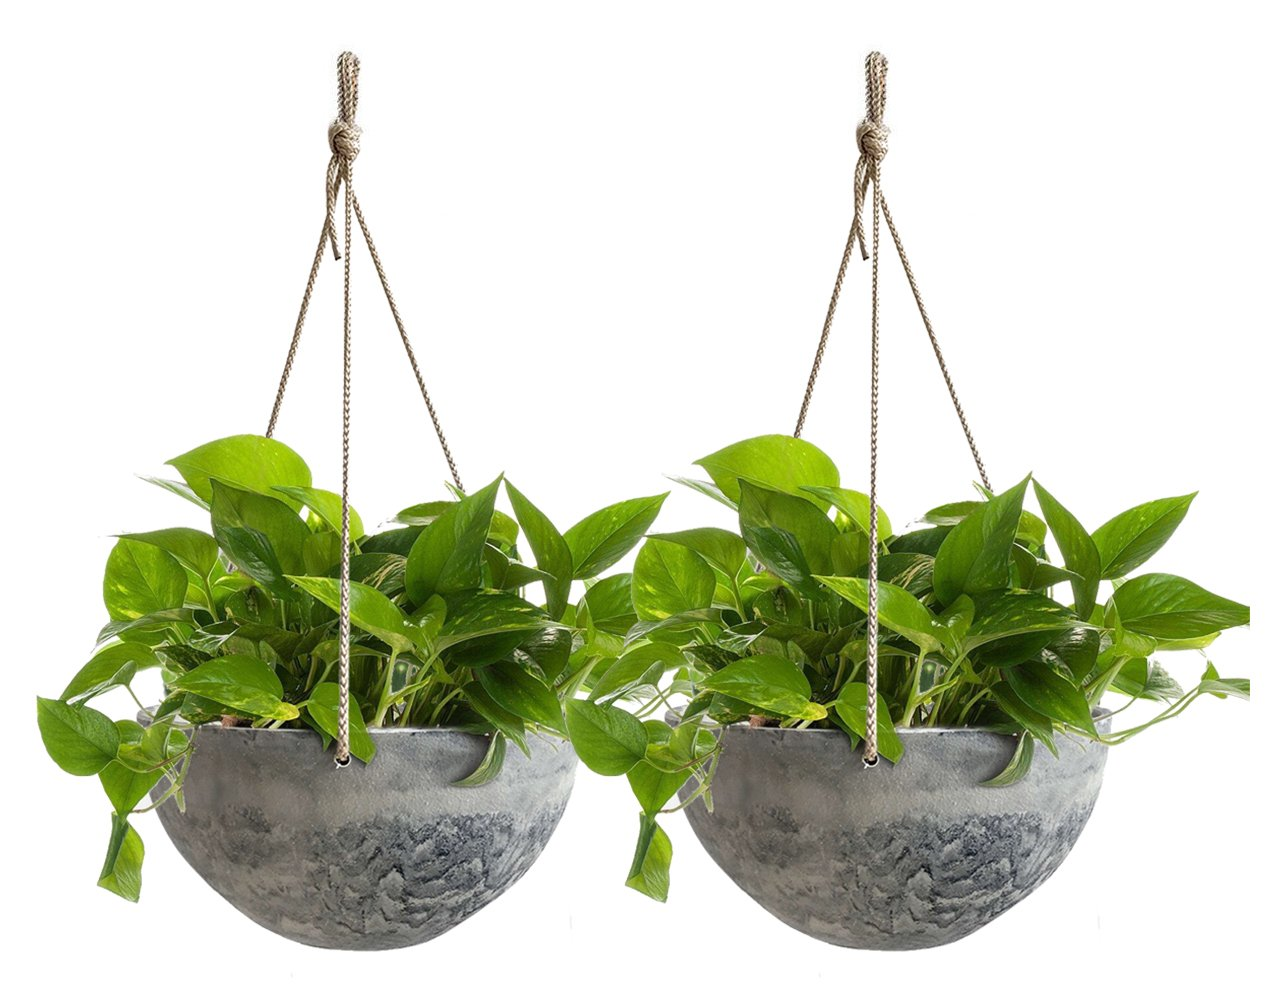 Hanging Planter 10'' Resin Balcony Flower Pots Patio Basket Marble Pattern 2 PC by LA JOLIE MUSE